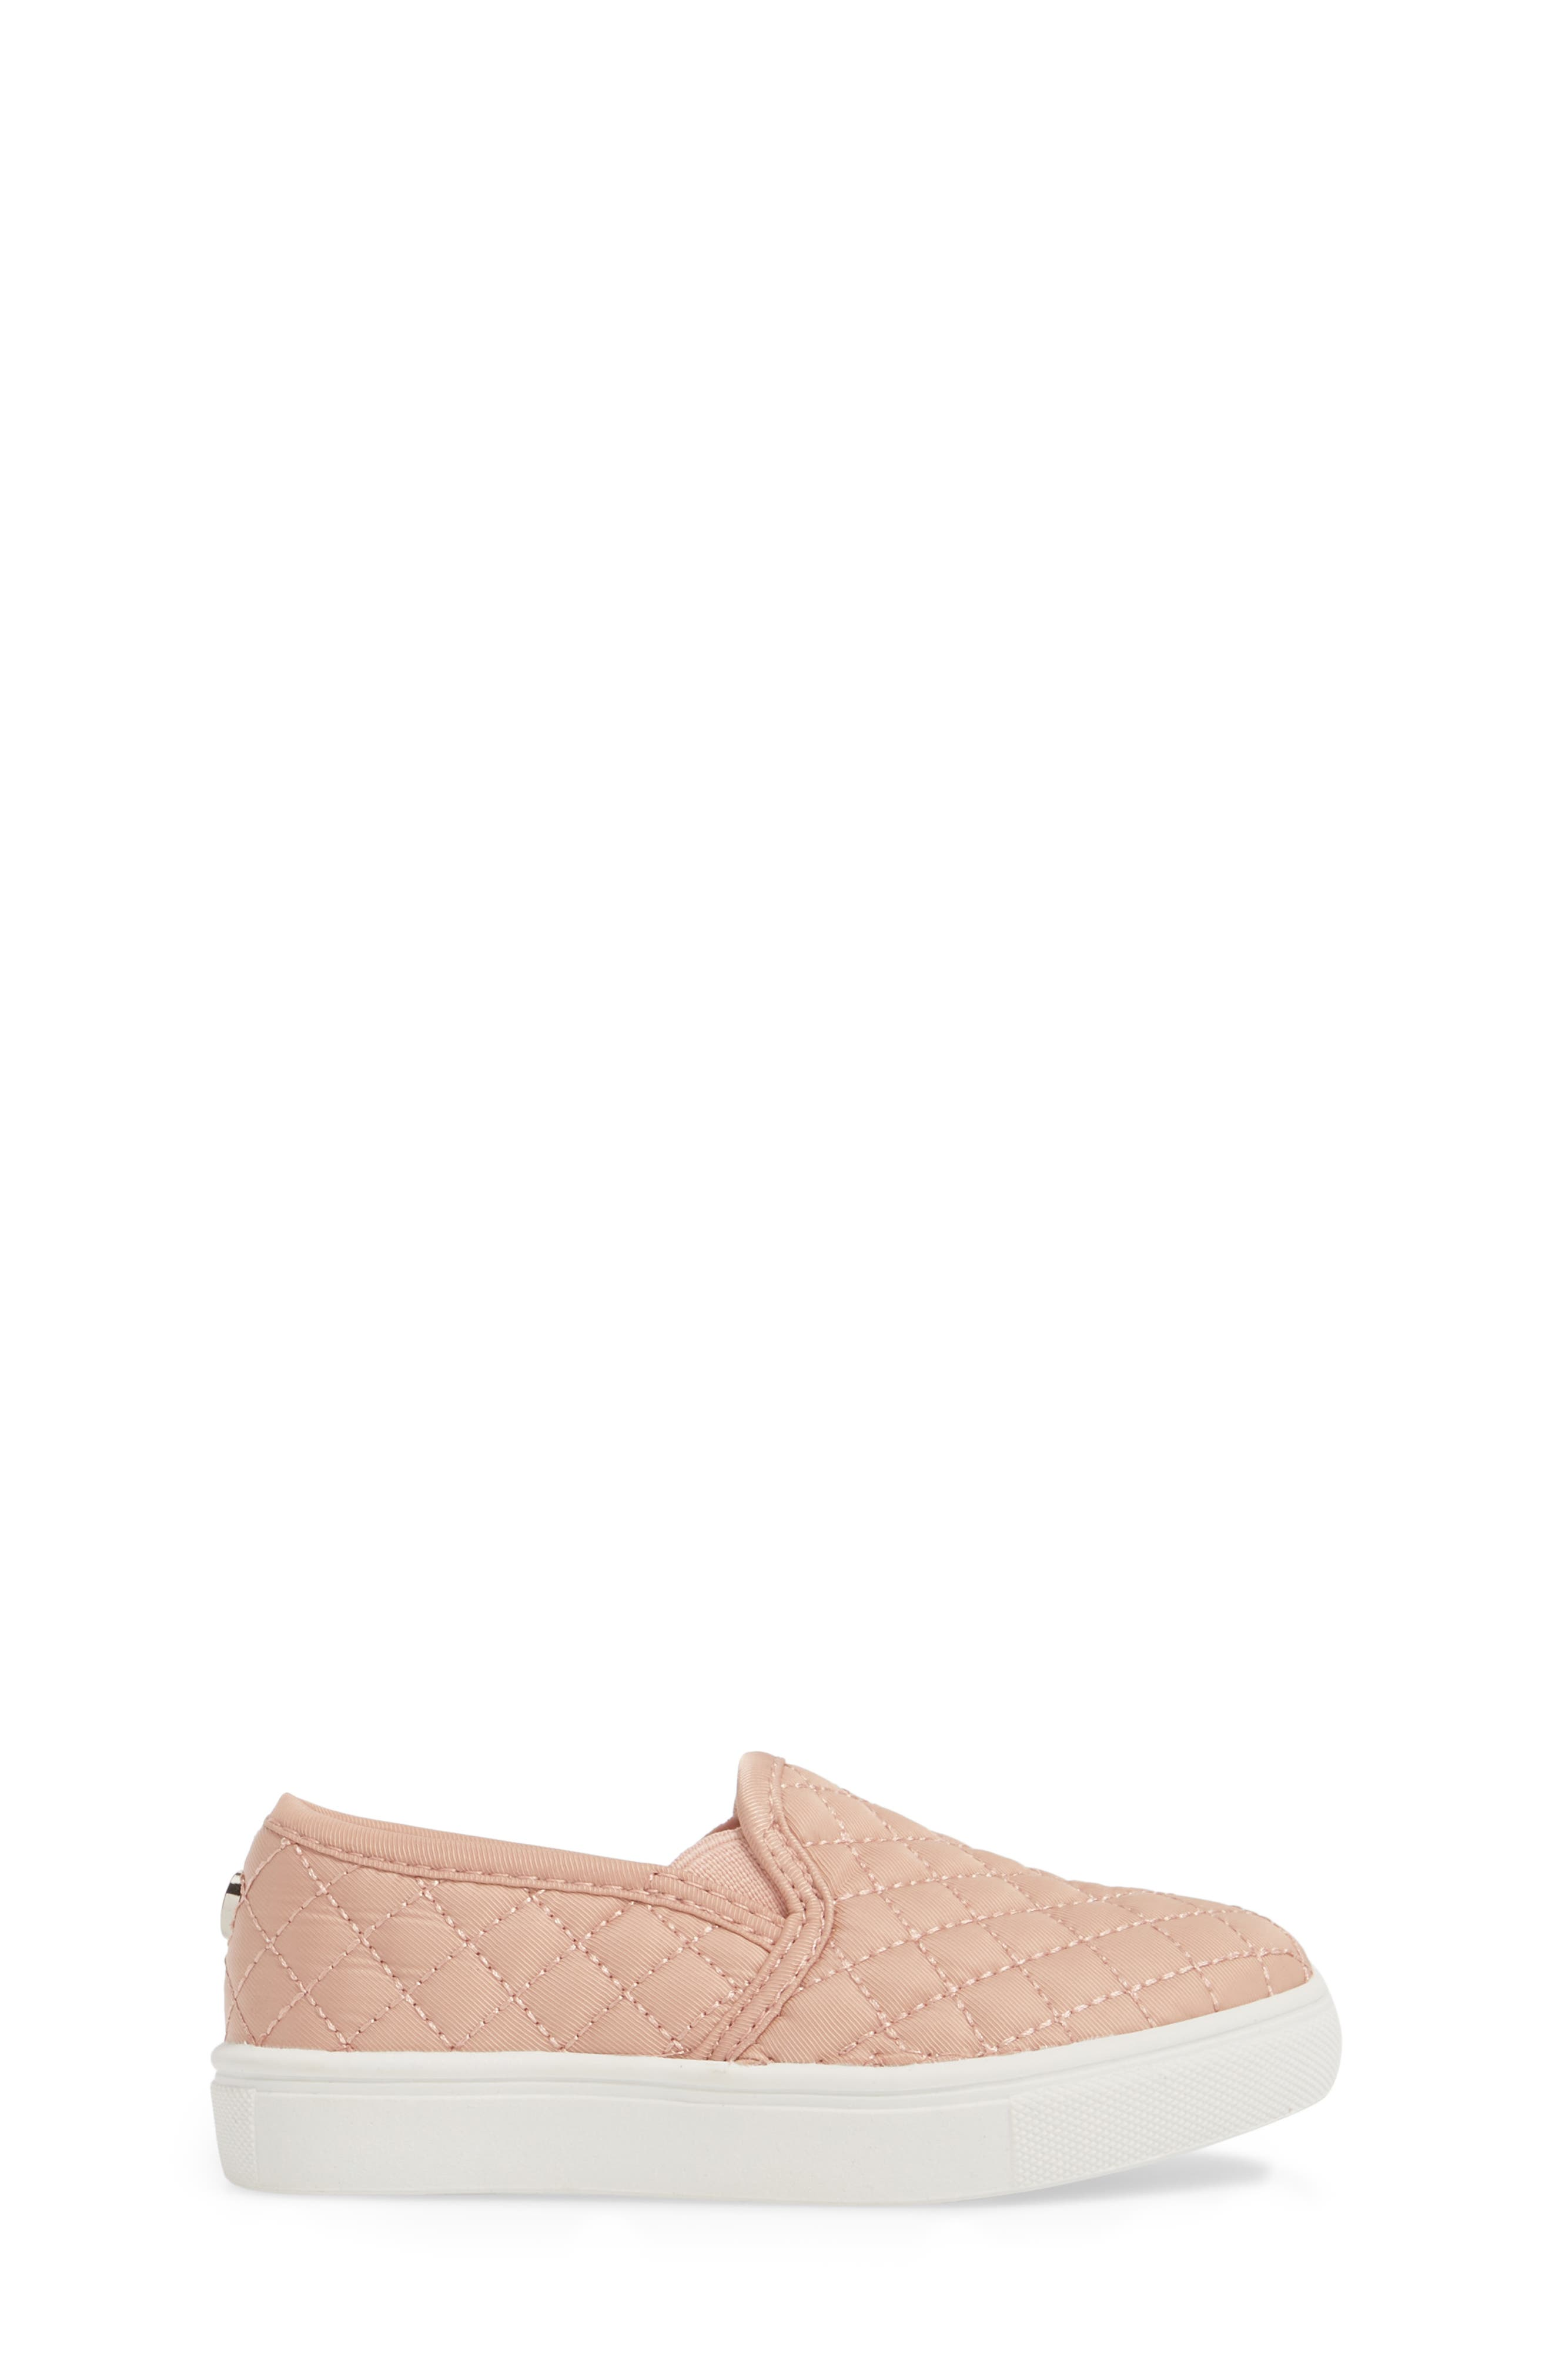 Tecntrc Quilted Slip-On Sneaker,                             Alternate thumbnail 3, color,                             BLUSH